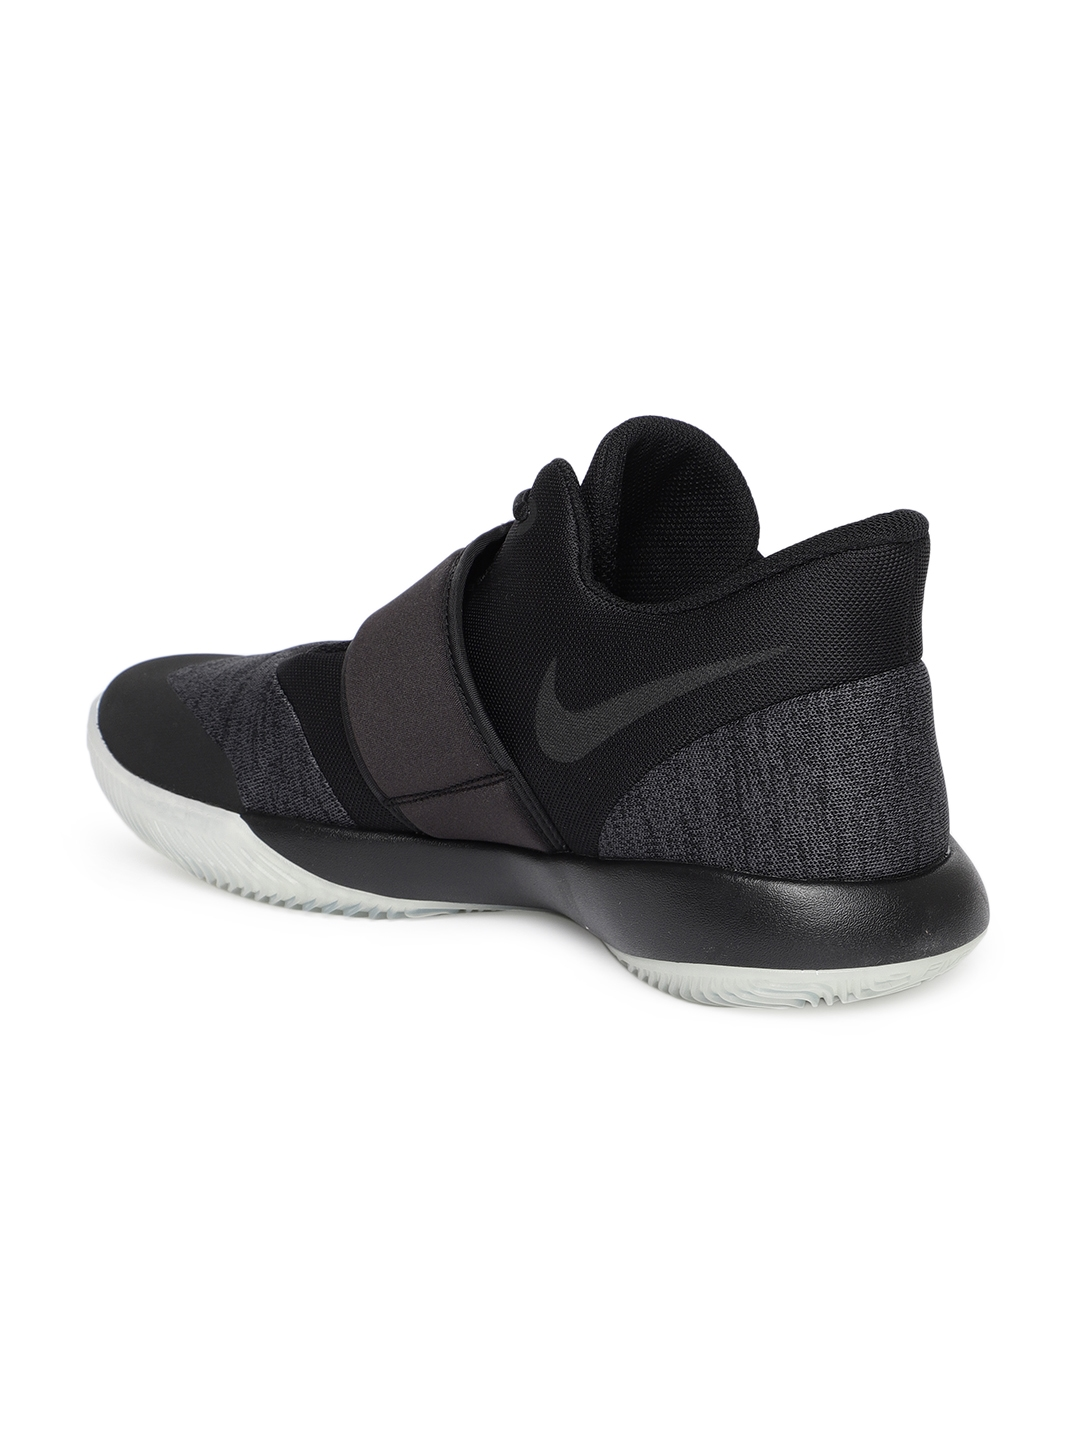 low priced 8644c e3f43 Nike Men Black KD Trey 5 VI Basketball Shoes